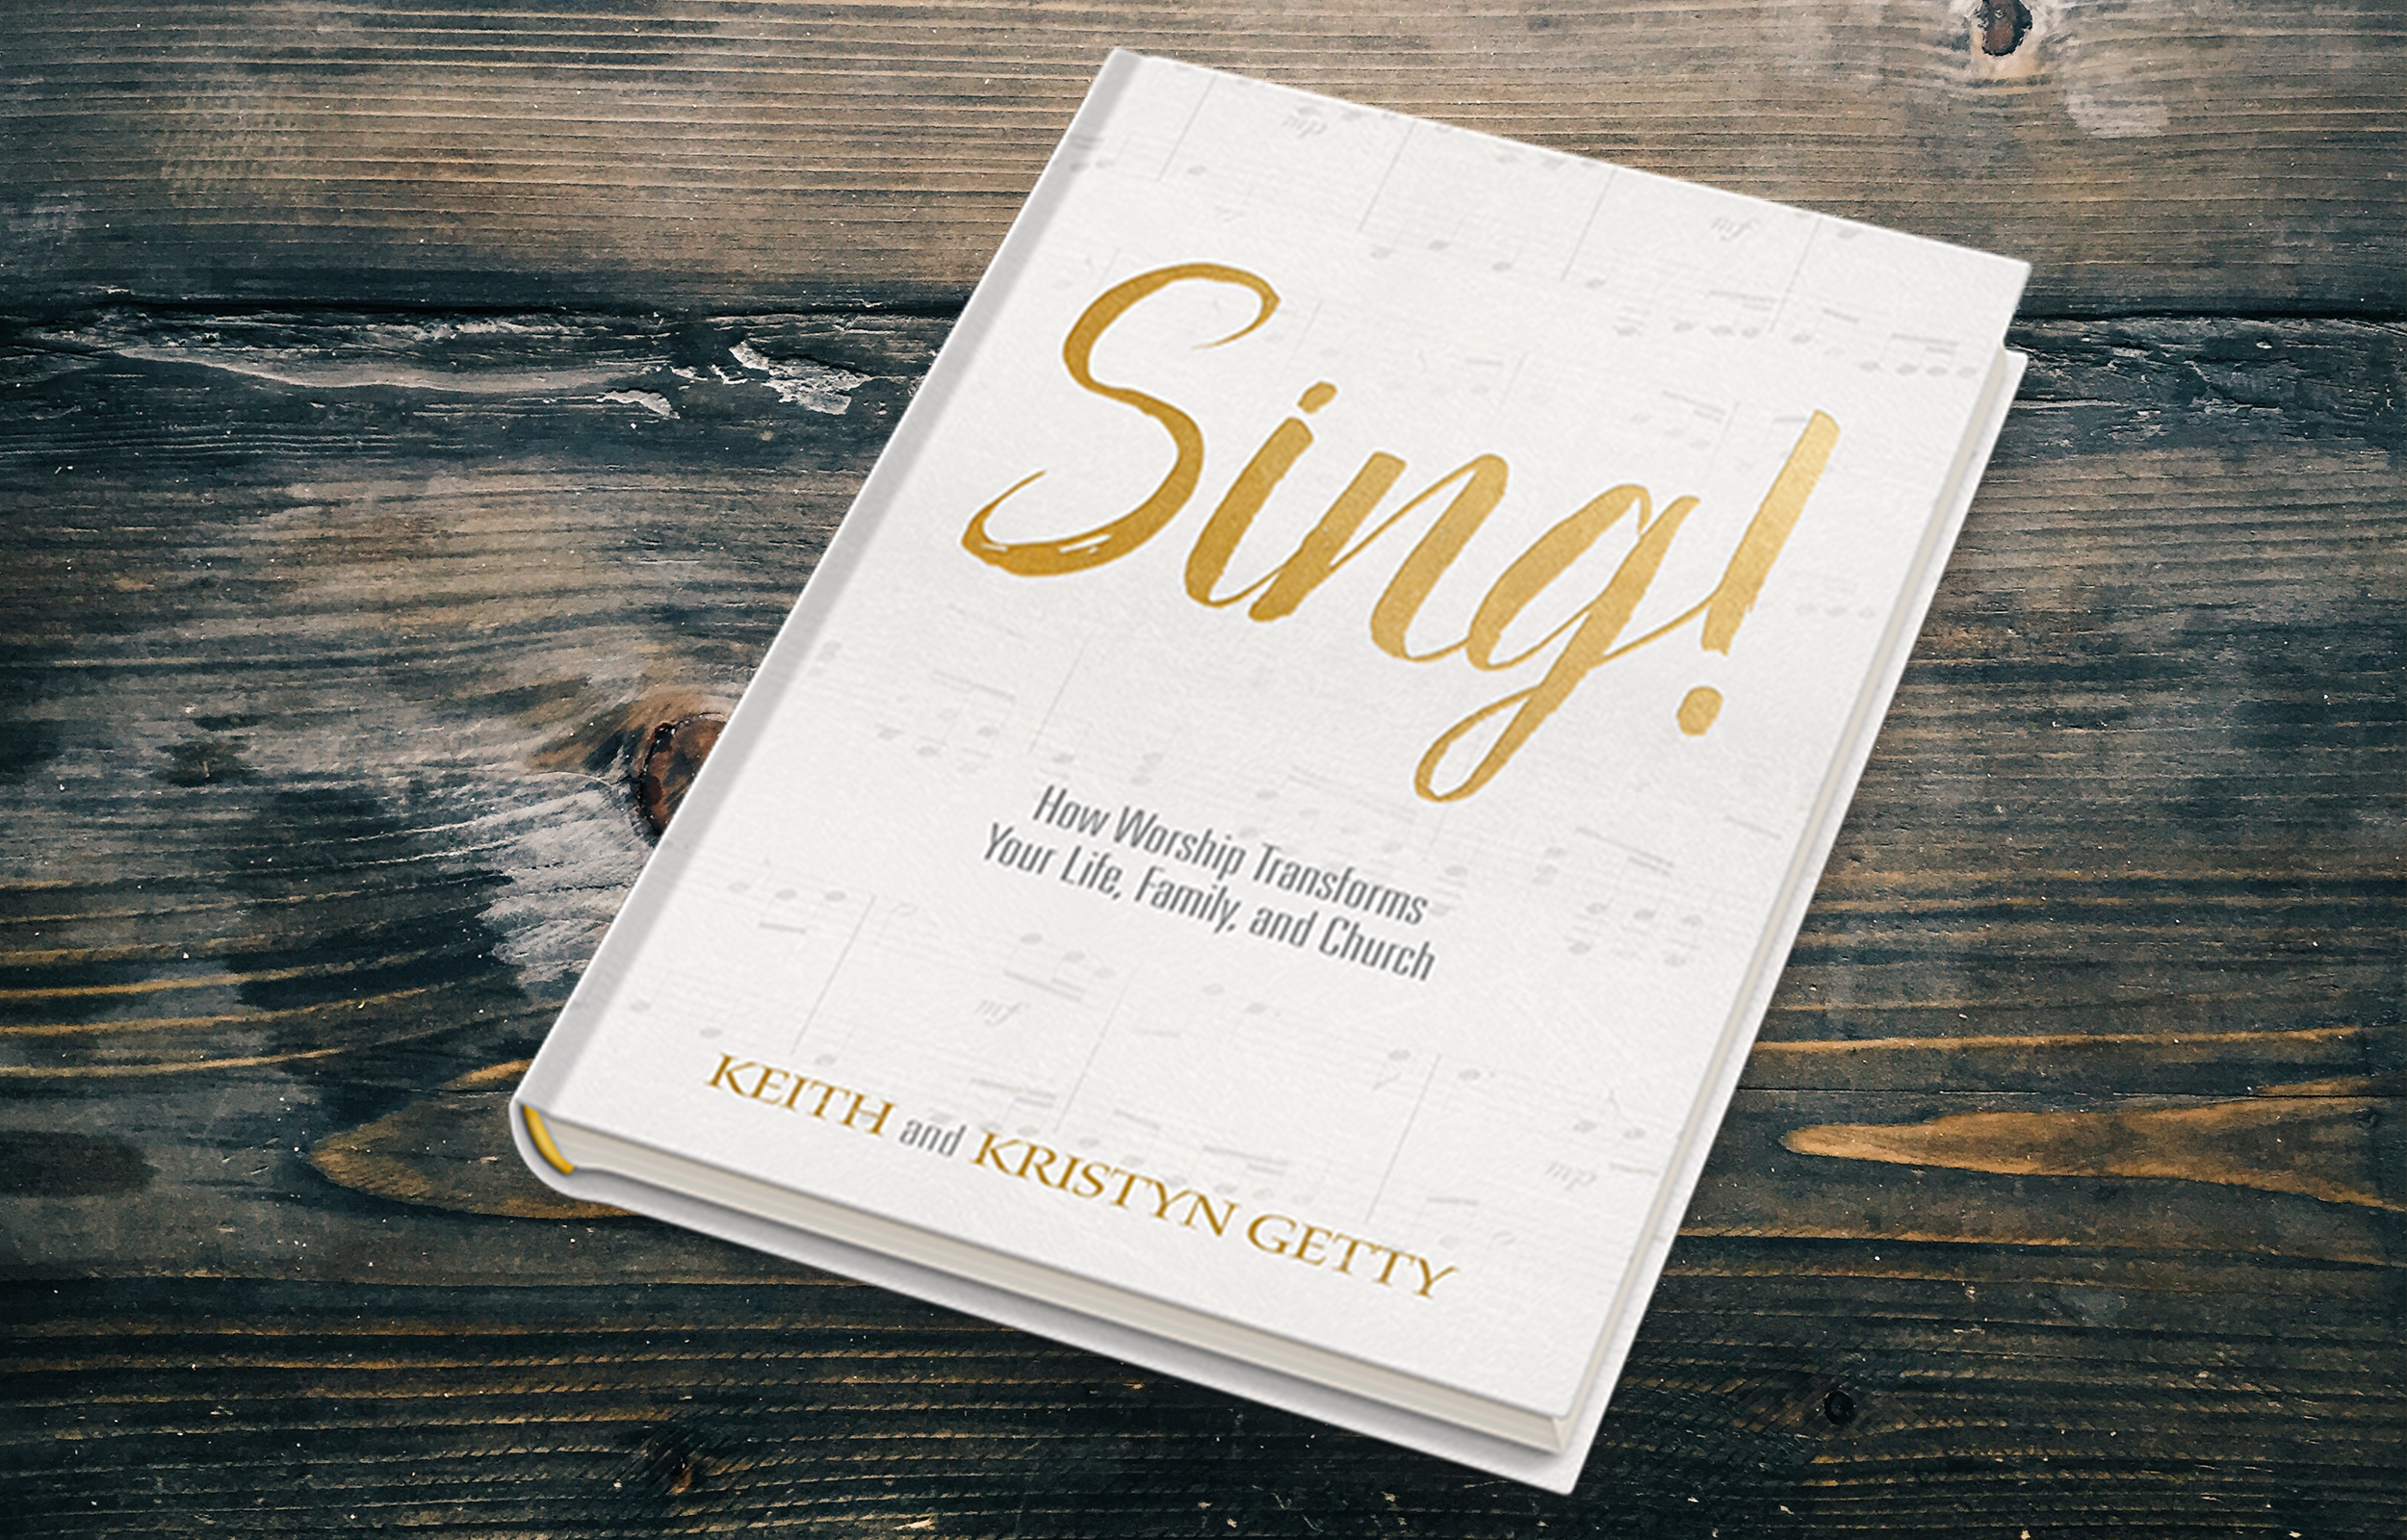 Getty Sing Book